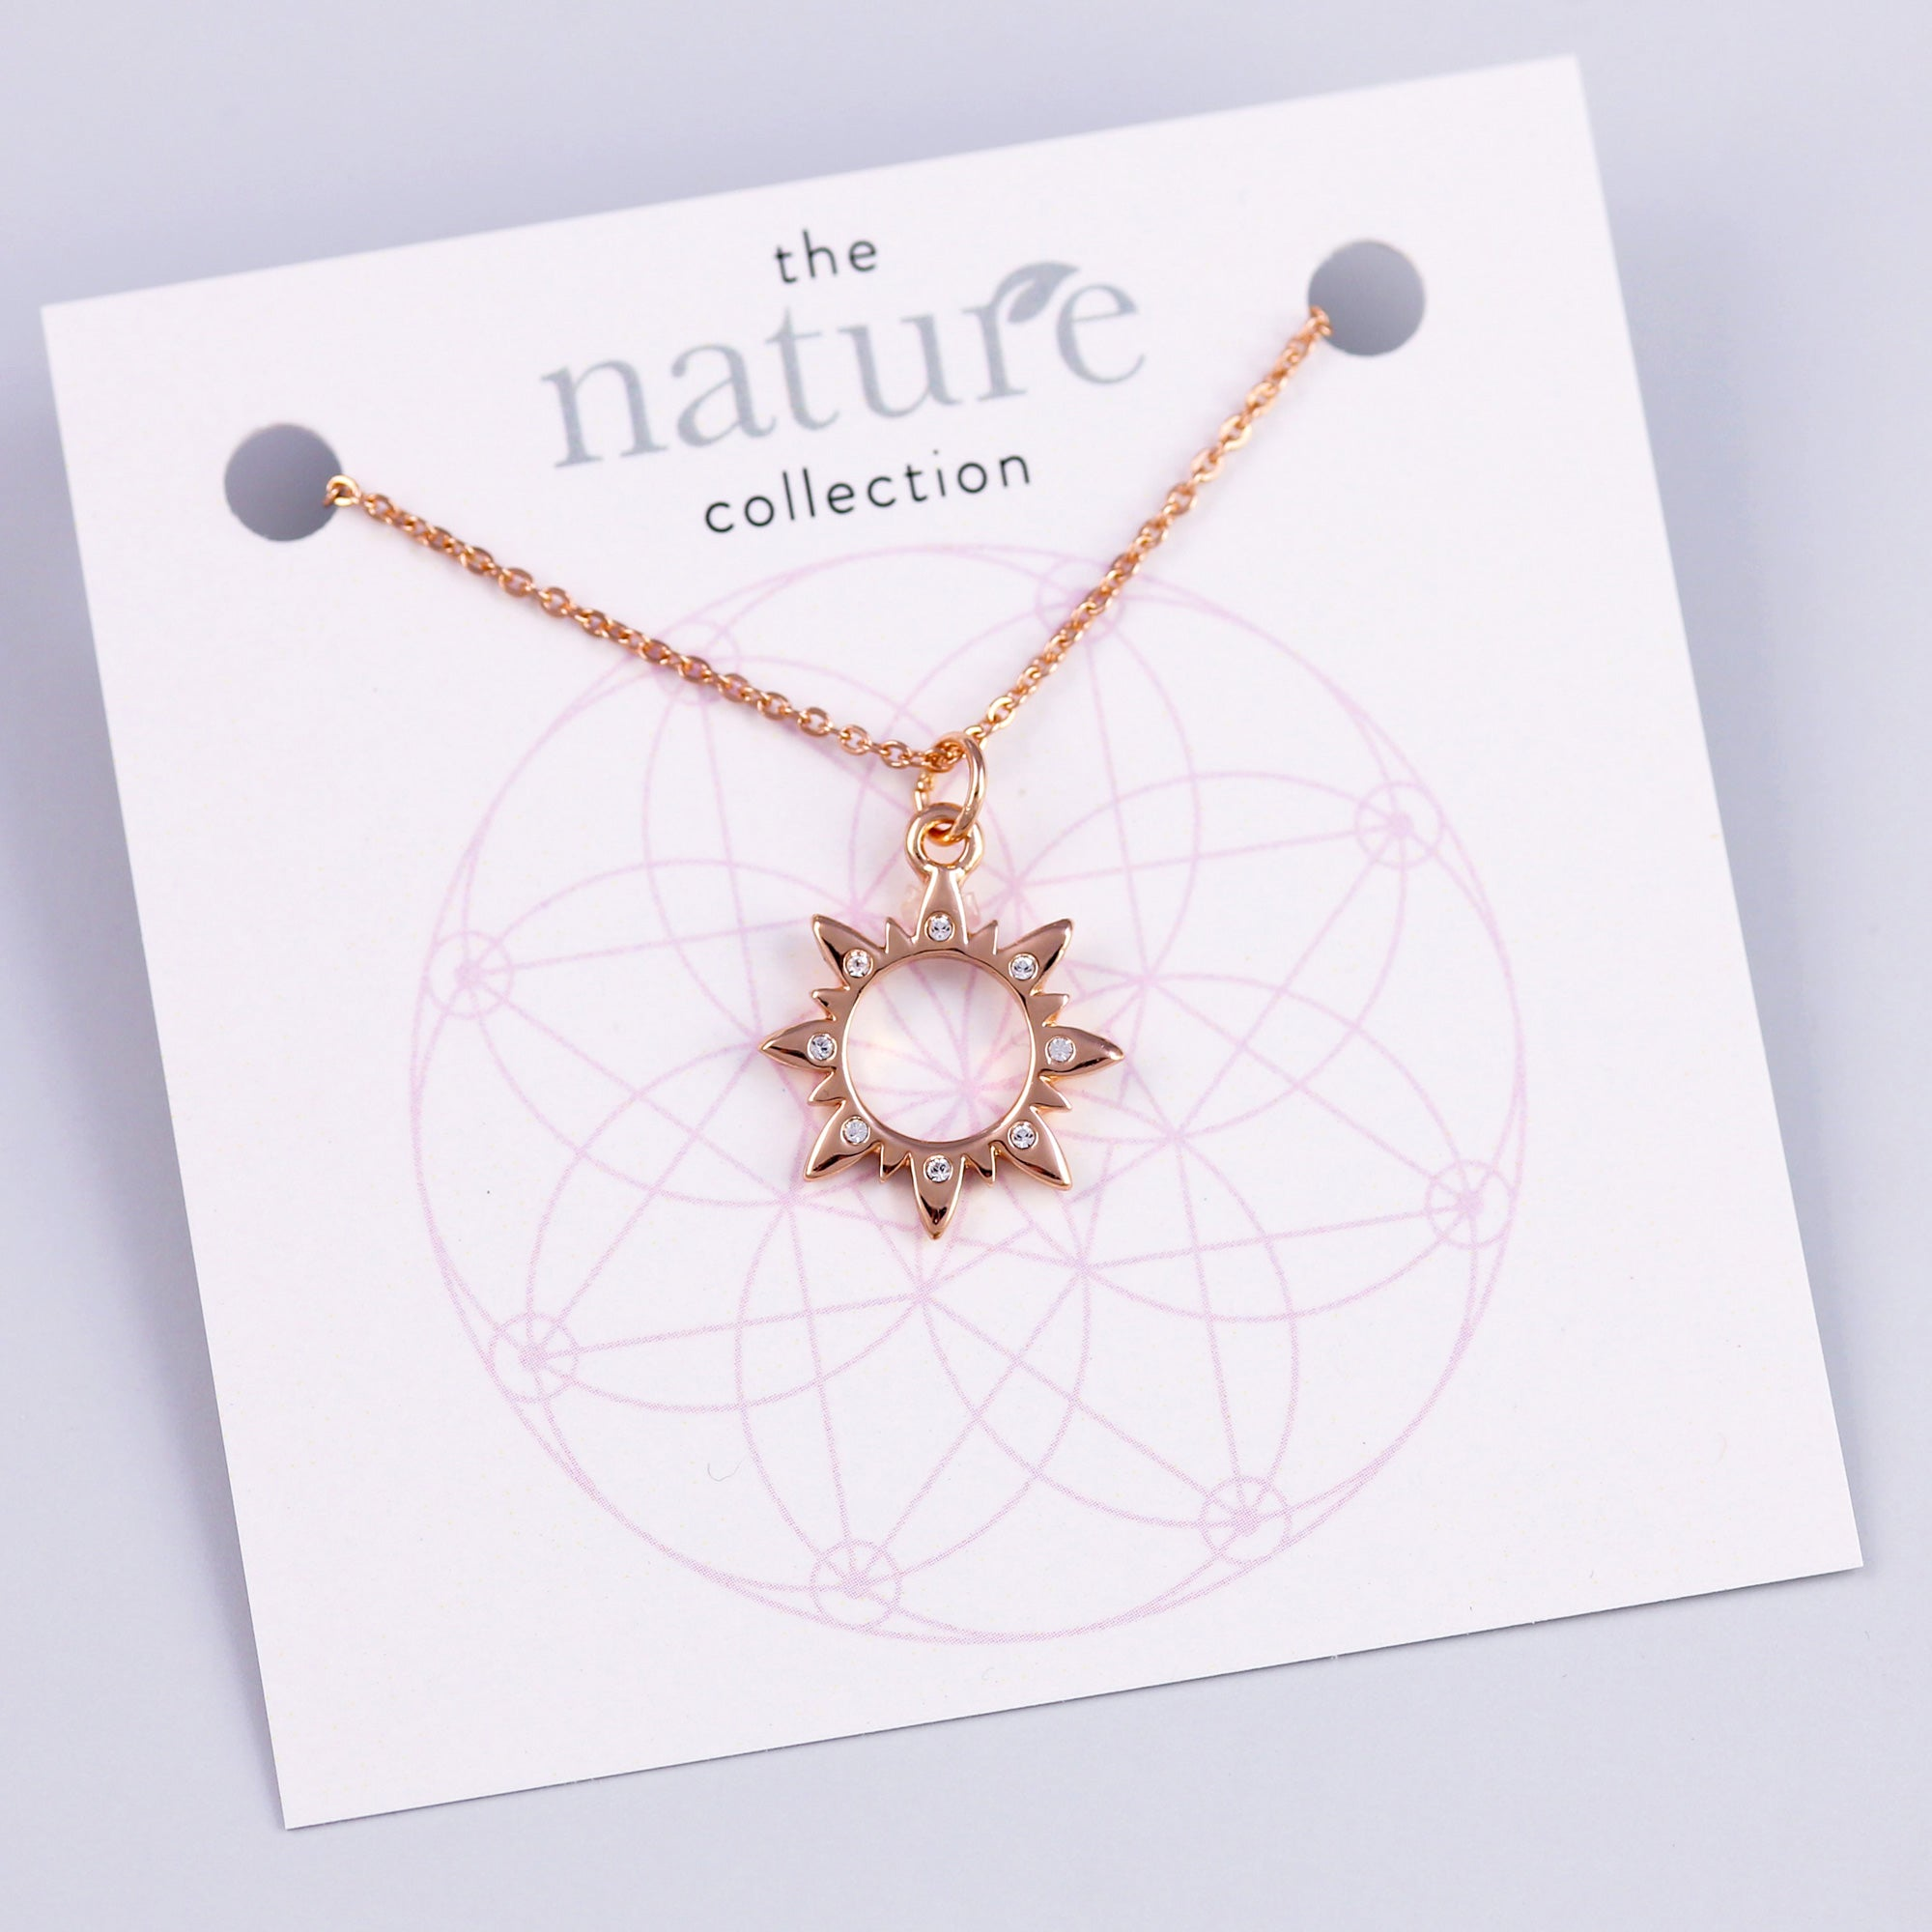 Rose Gold Sun Necklace Nature Collection